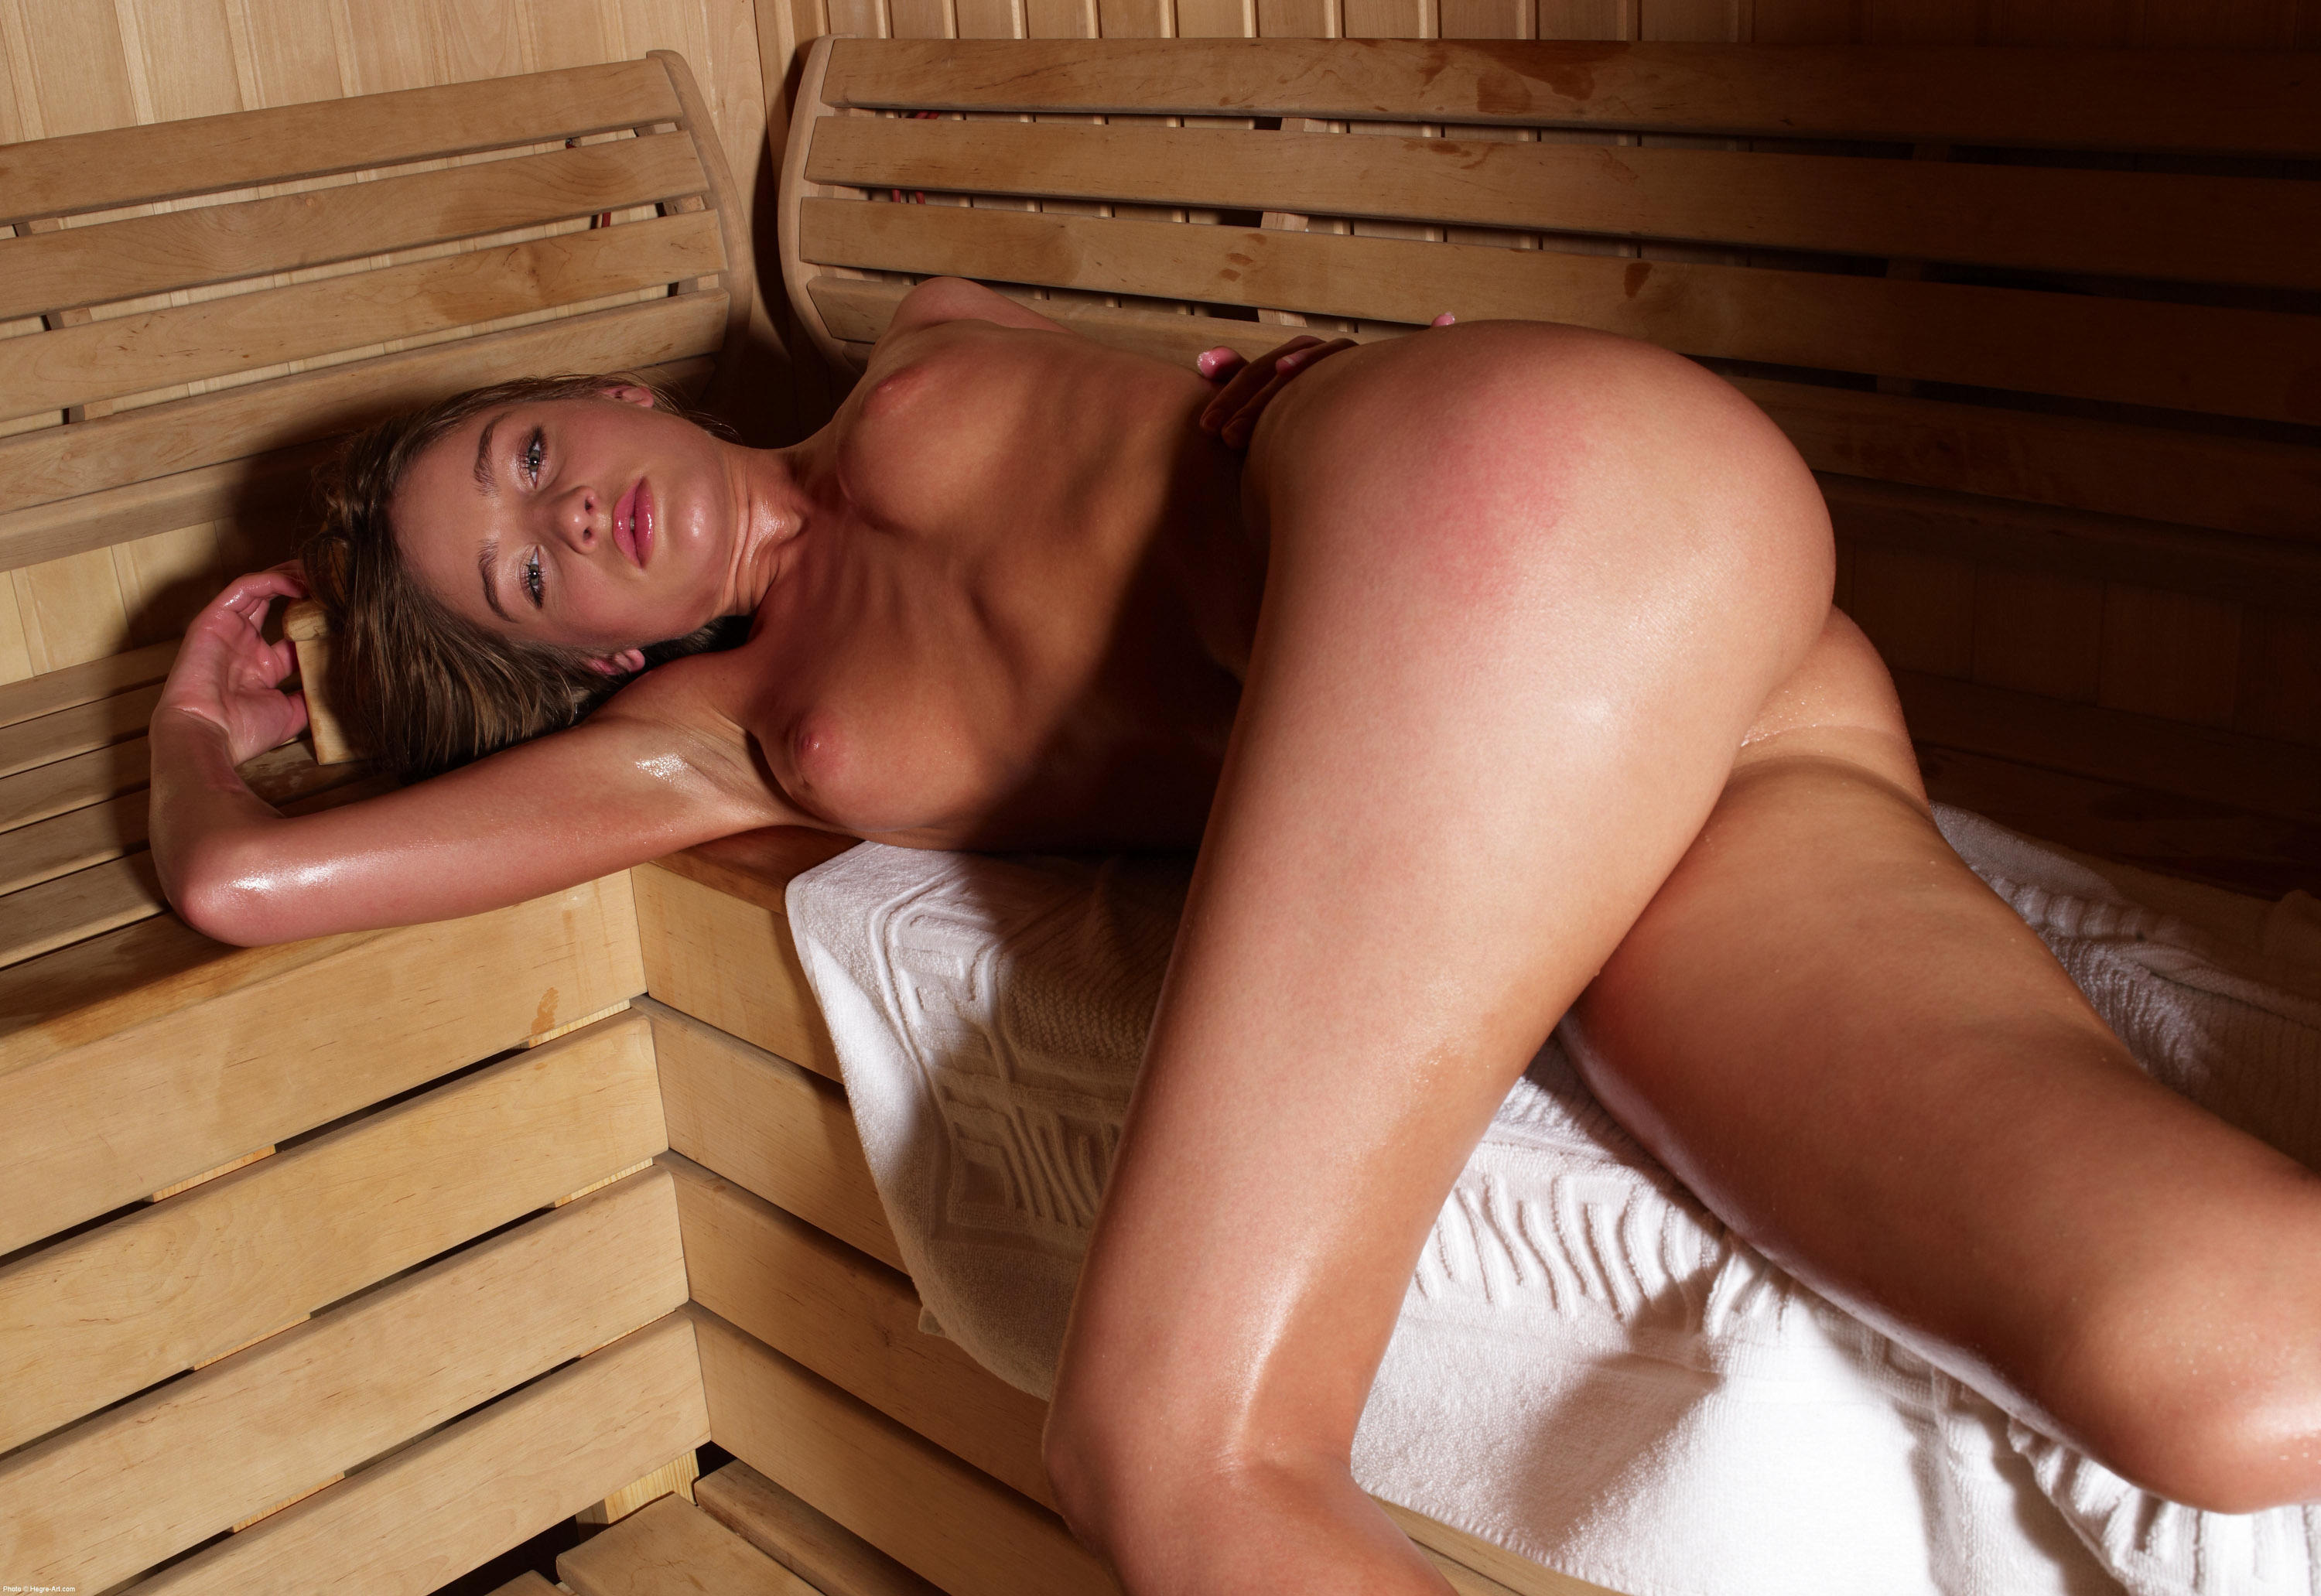 Naked Girls In The Sauna And Steam Room